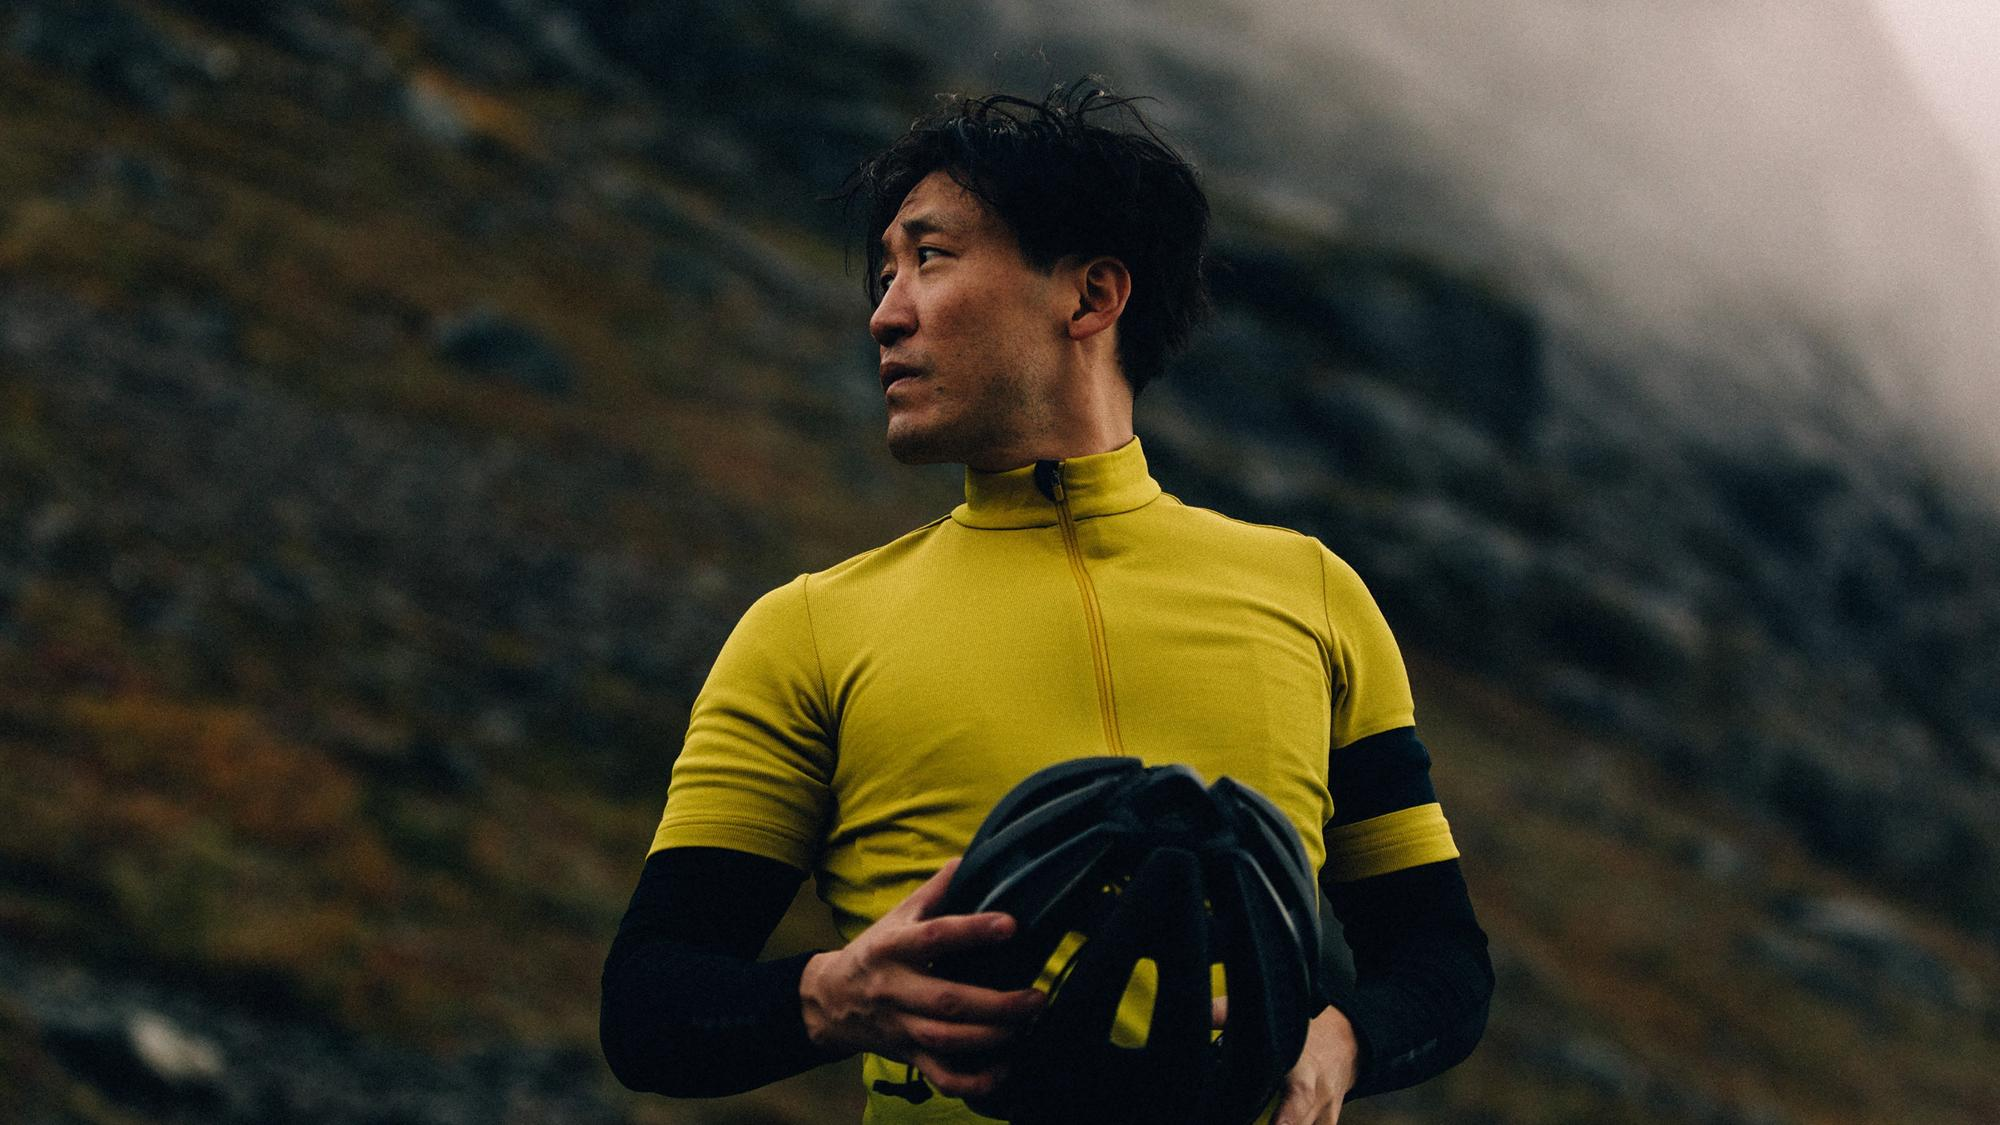 Cycling Jerseys for Autumn